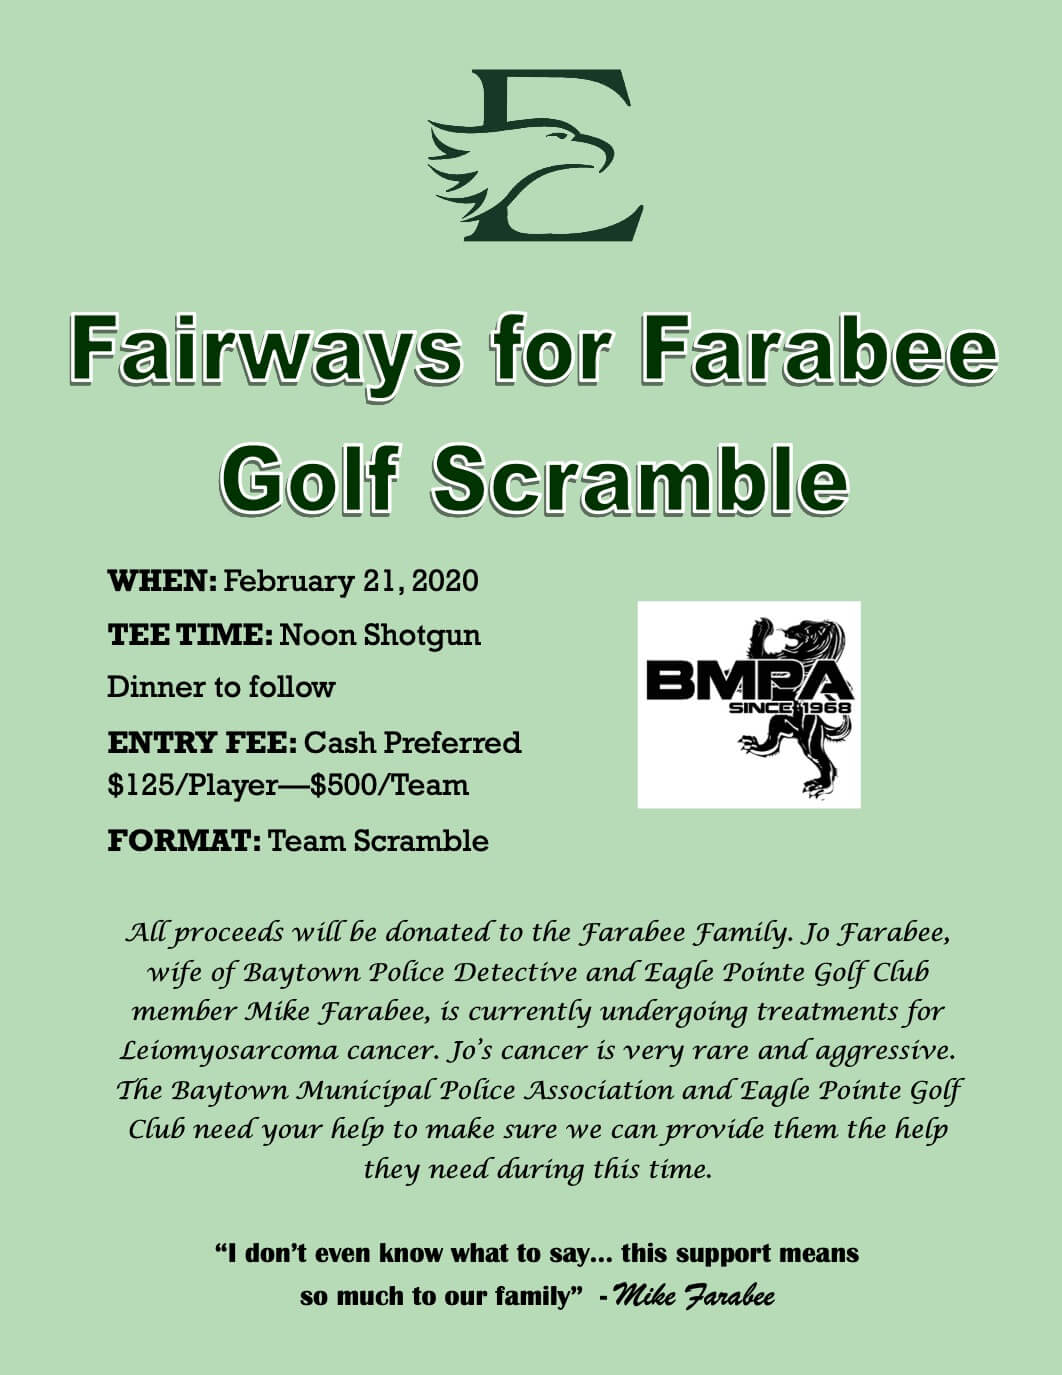 Fairways-for-Farabee---Flyer---IM_20200116-174303_1